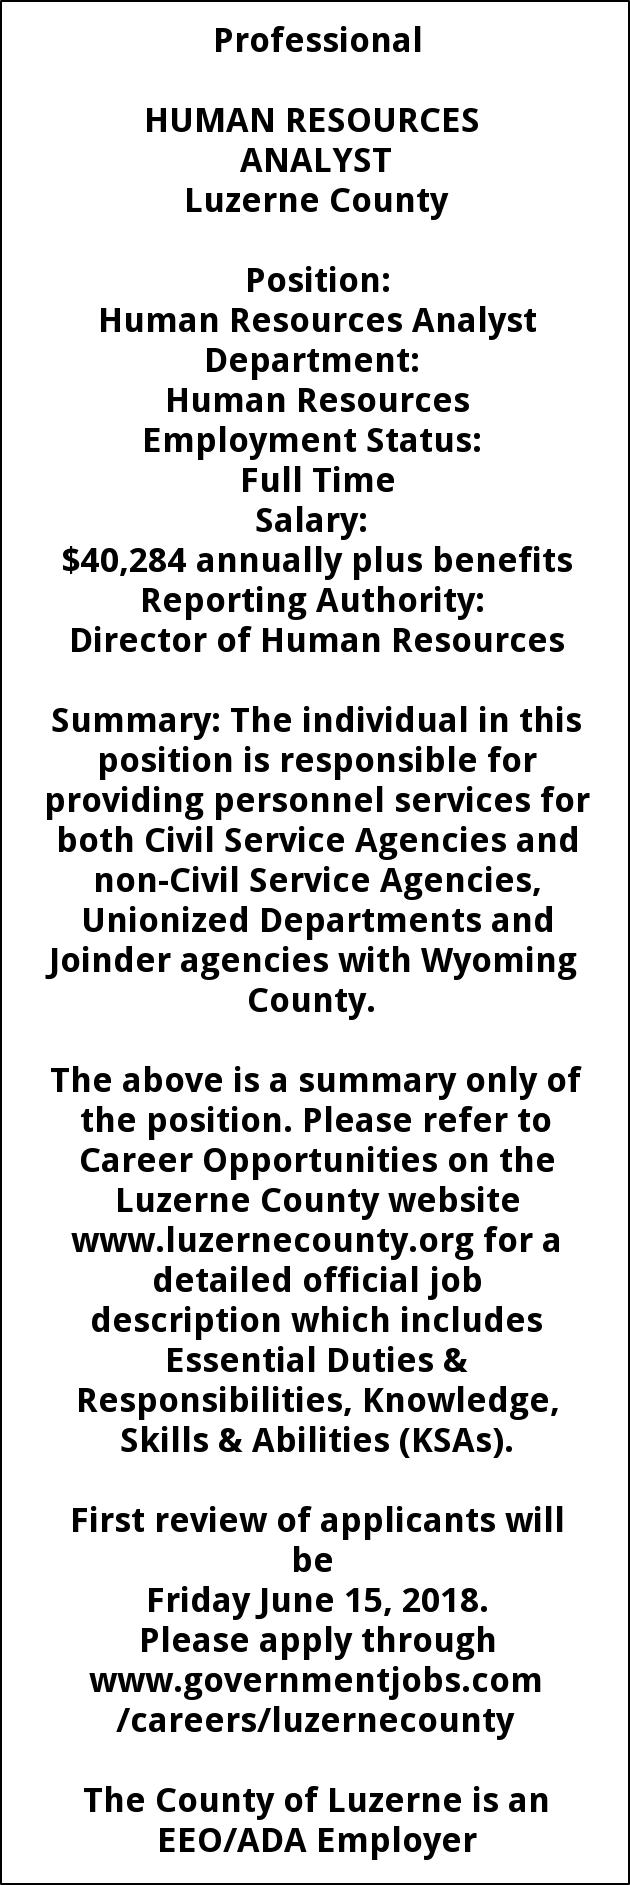 Human Resources Analyst, Luzerne County